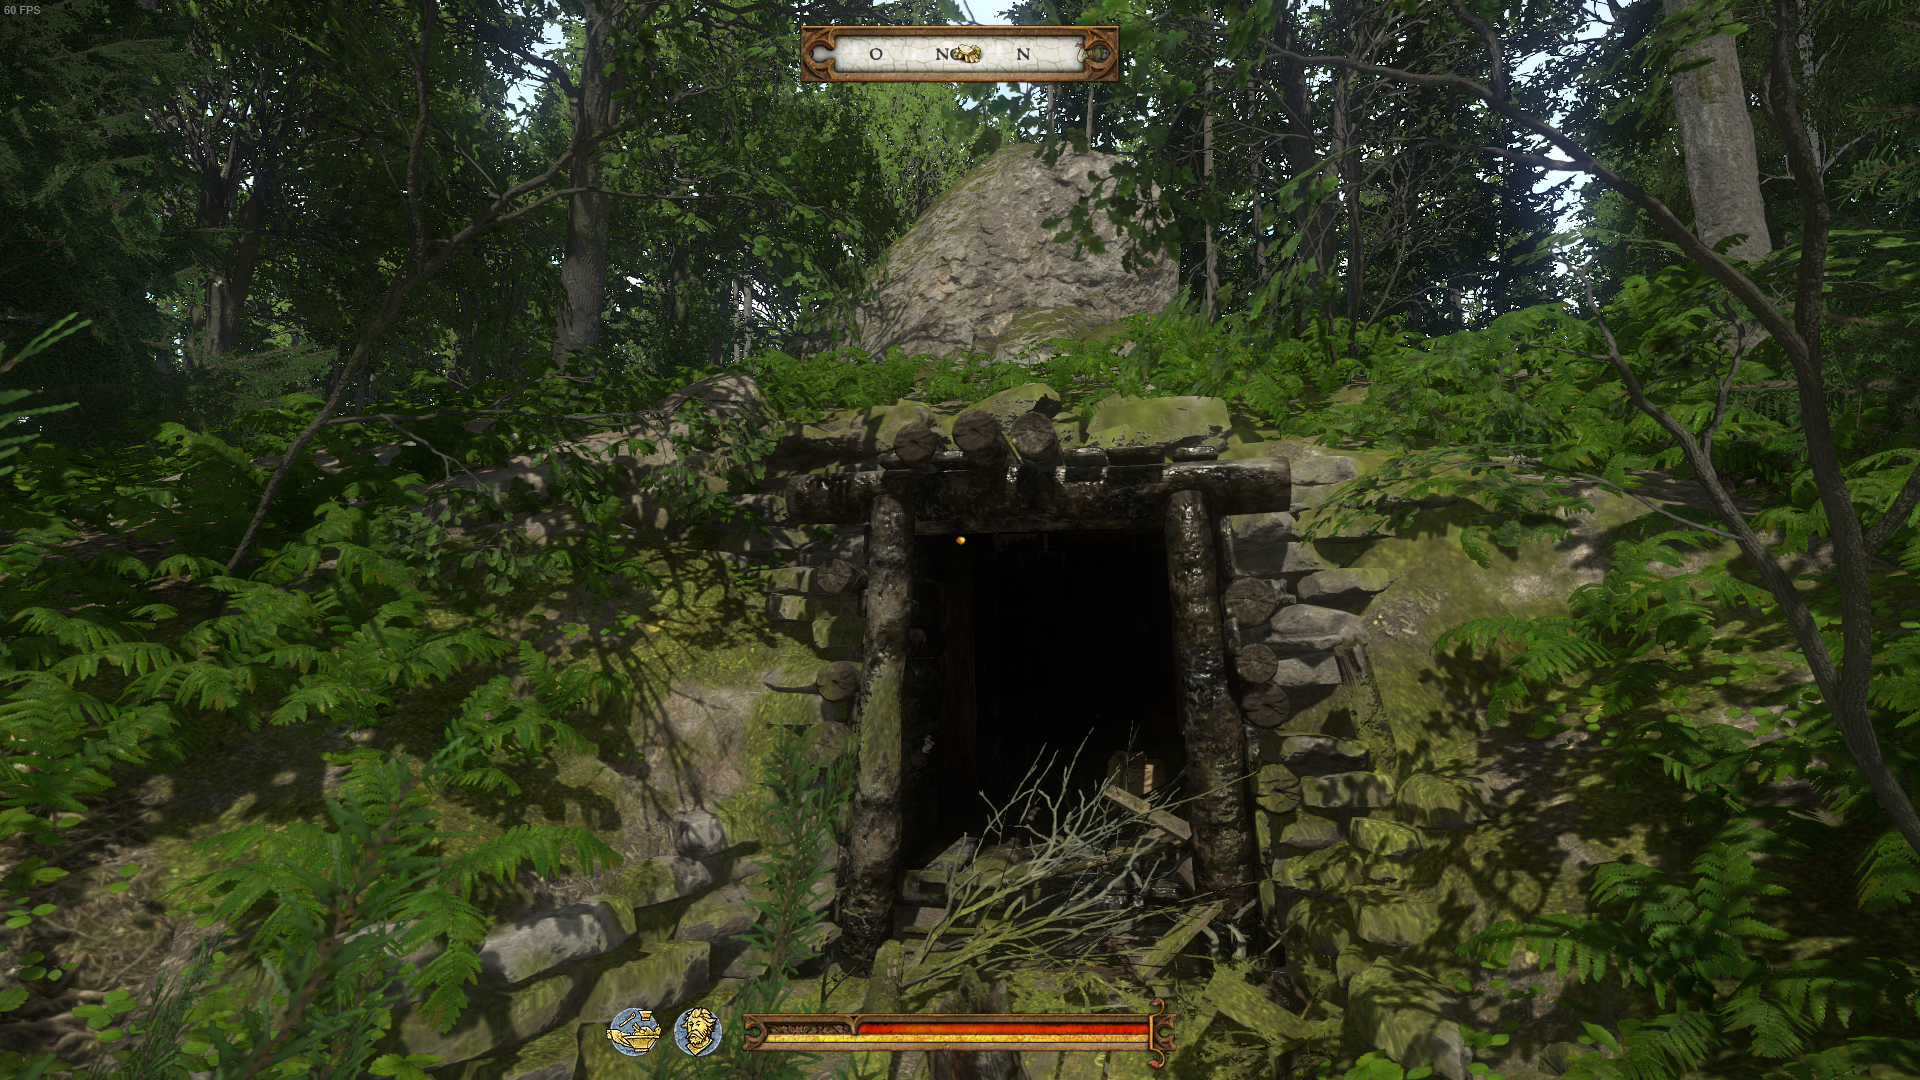 [Soluce] Kingdom Come Deliverance : Emplacements des cartes ancestrales